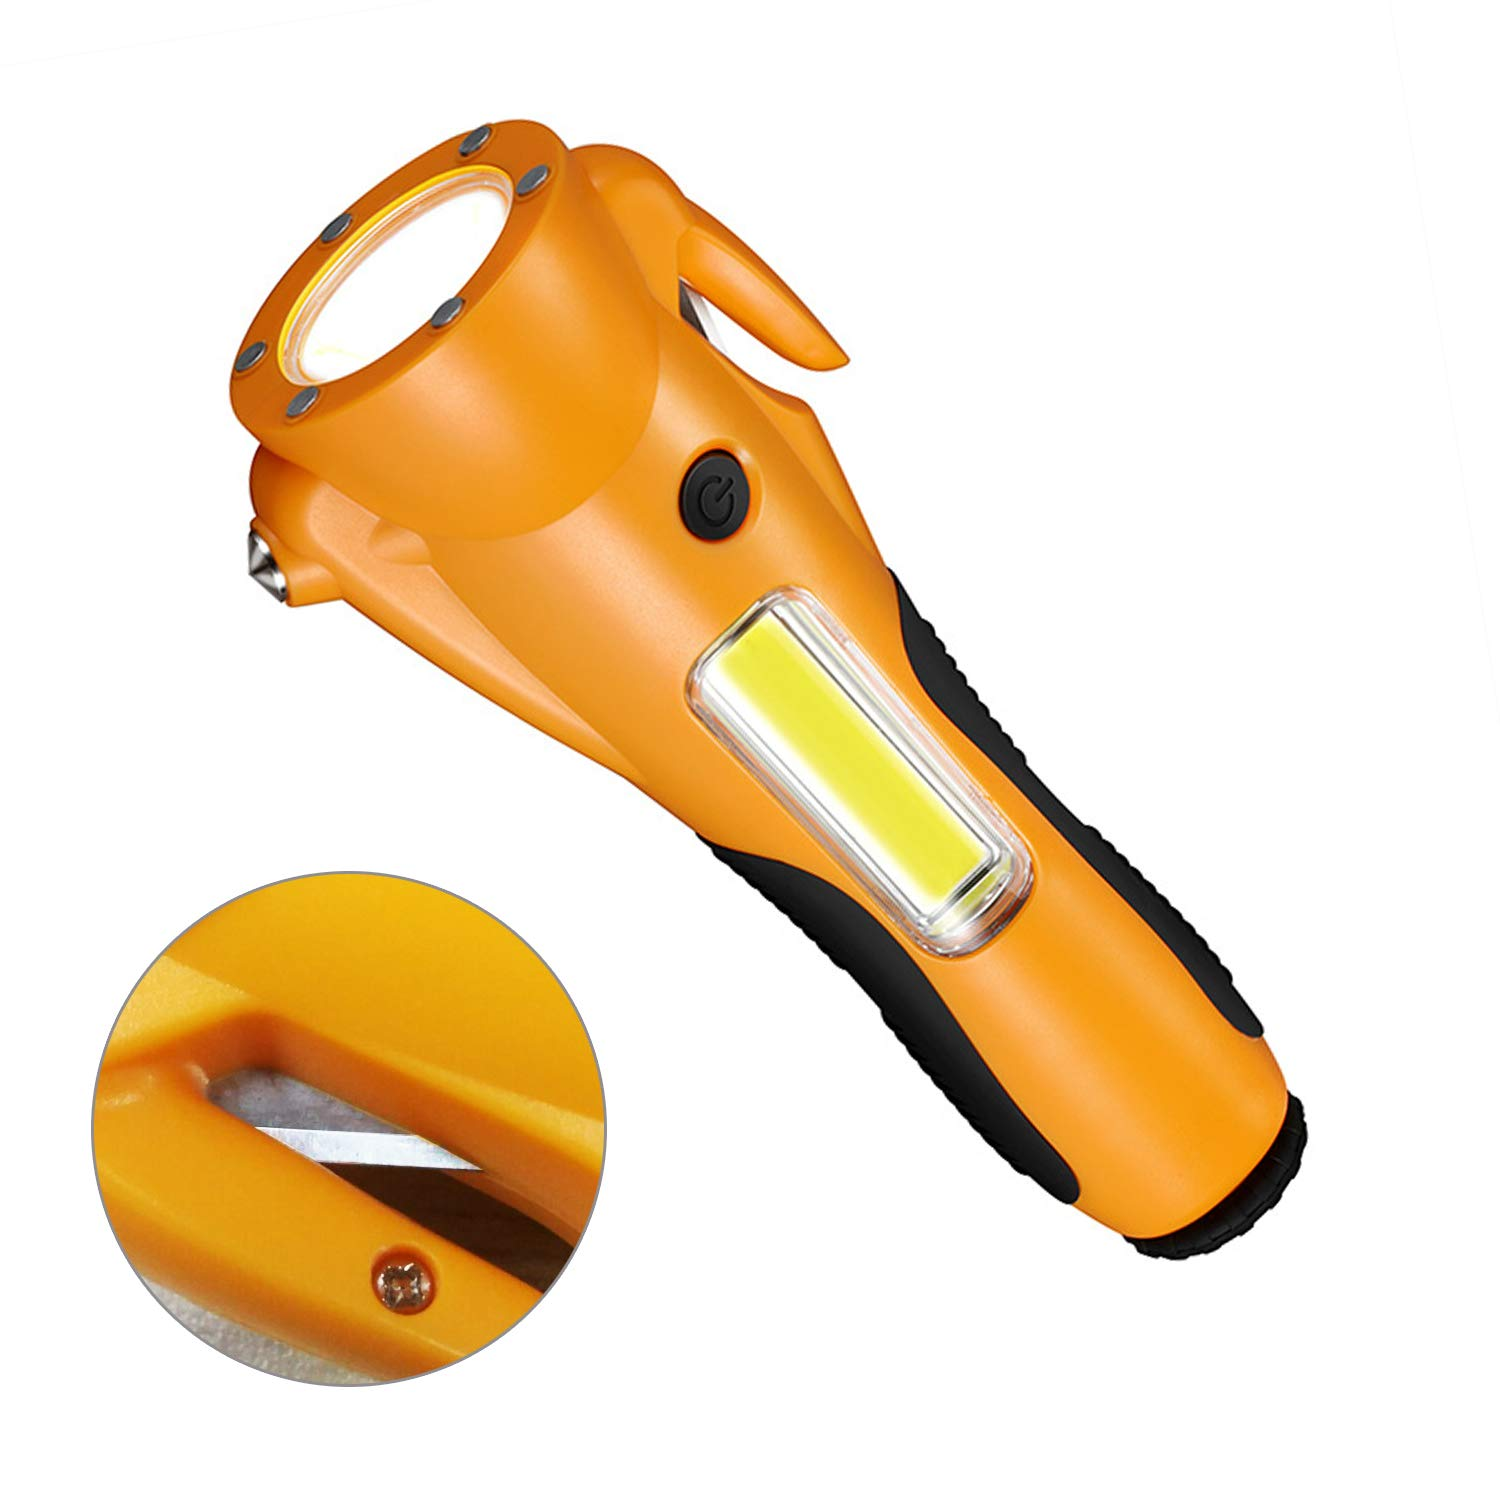 6 in 1 Emergency Escape Tool with Car Window Breaker and Seat Belt Cutter Yellow Life Saving Survival Kit LED Flashlight All Vehicles Whistle /& Alarm Lamp Kit for Cars XBRN Car Safety Hammer